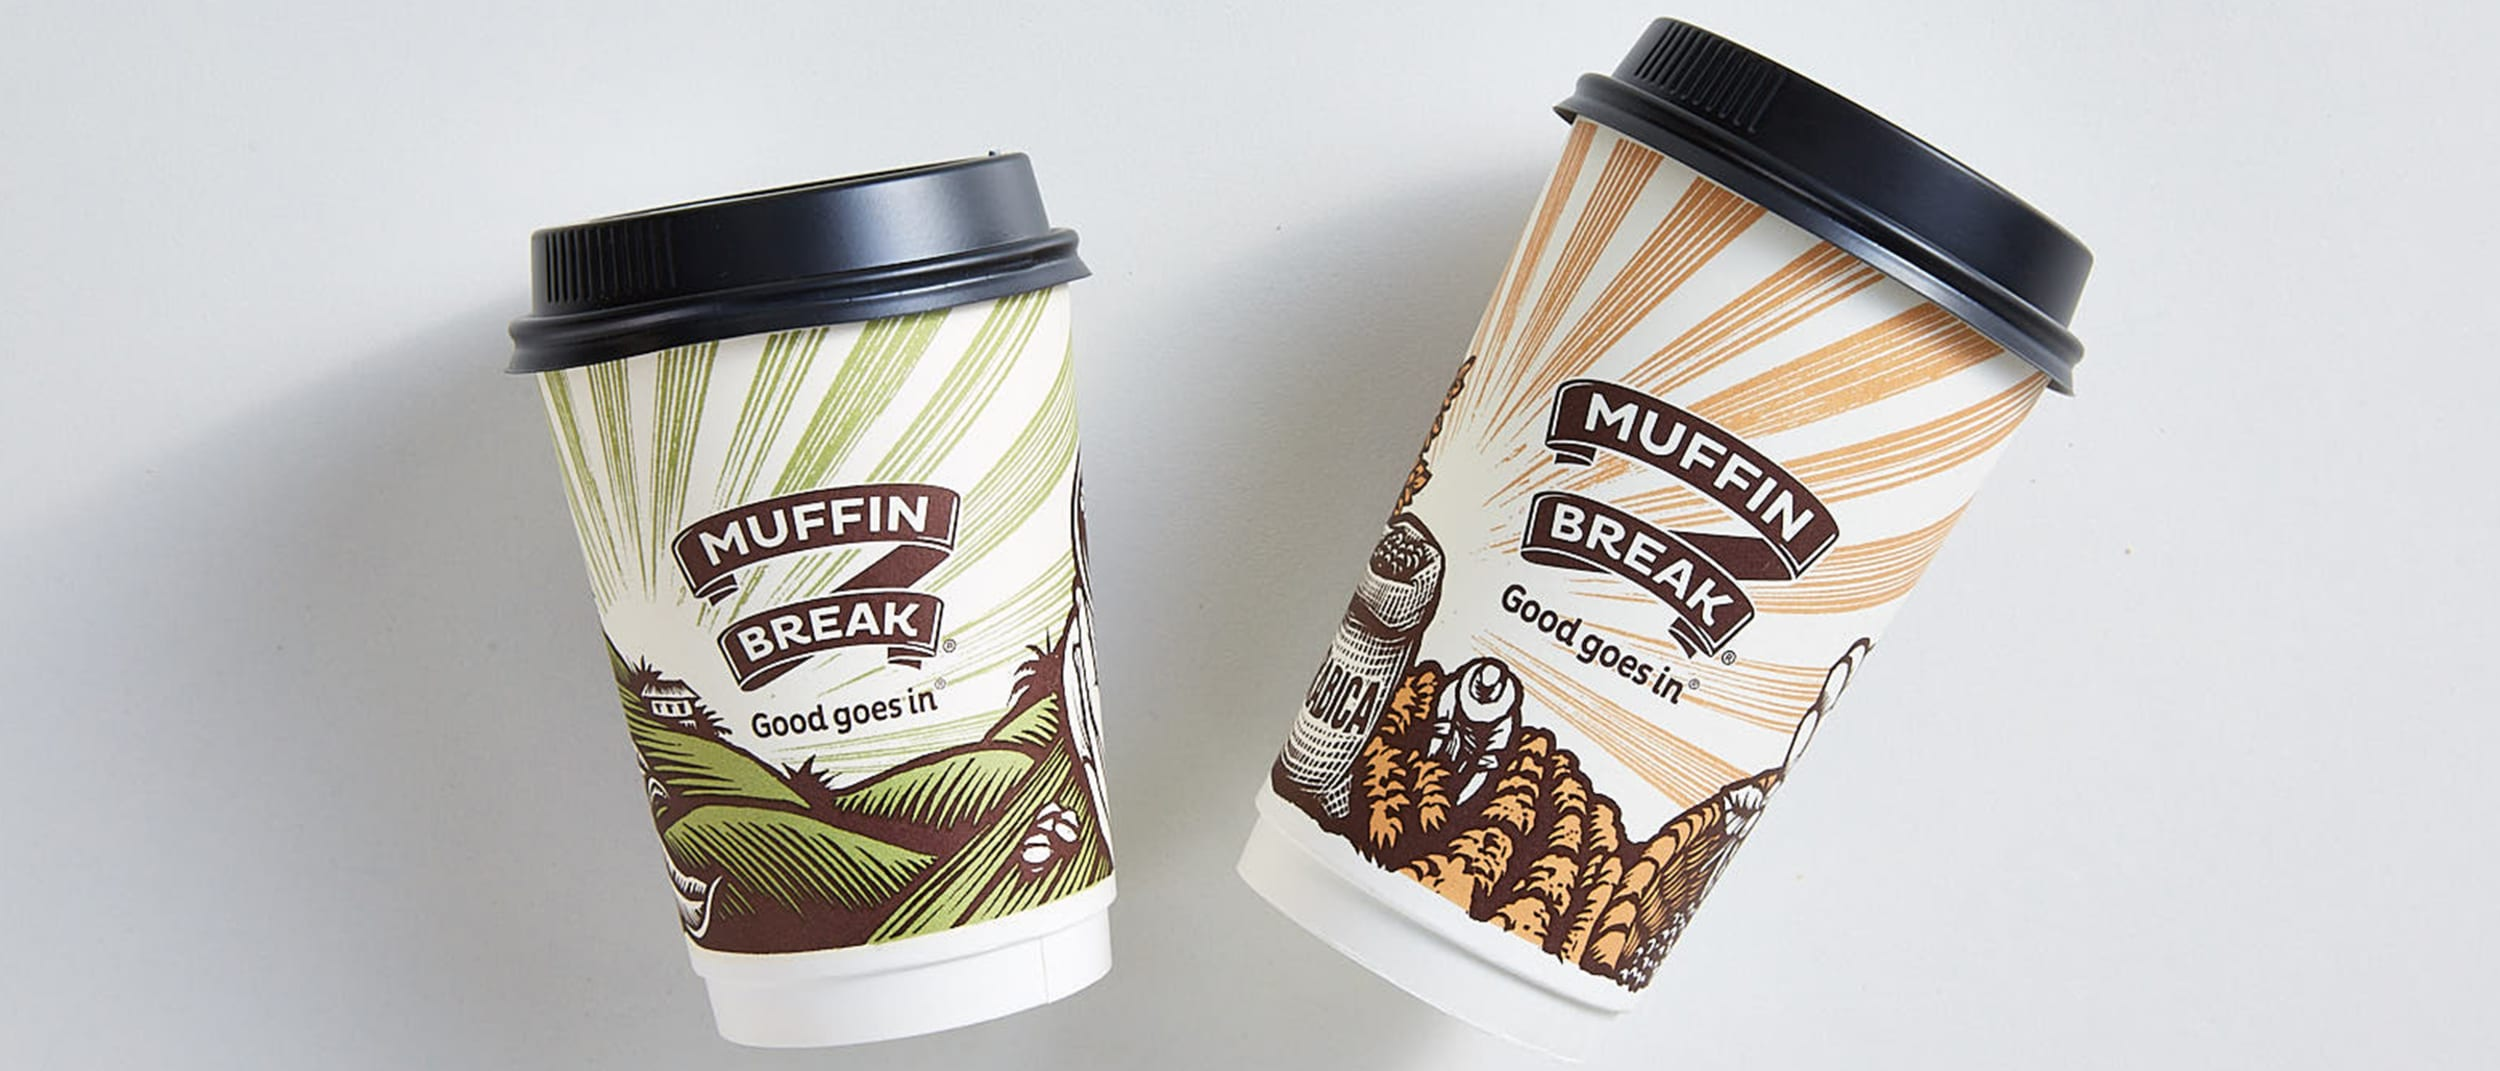 Muffin Break joins forces with Simply Cups: Be Change Warriors